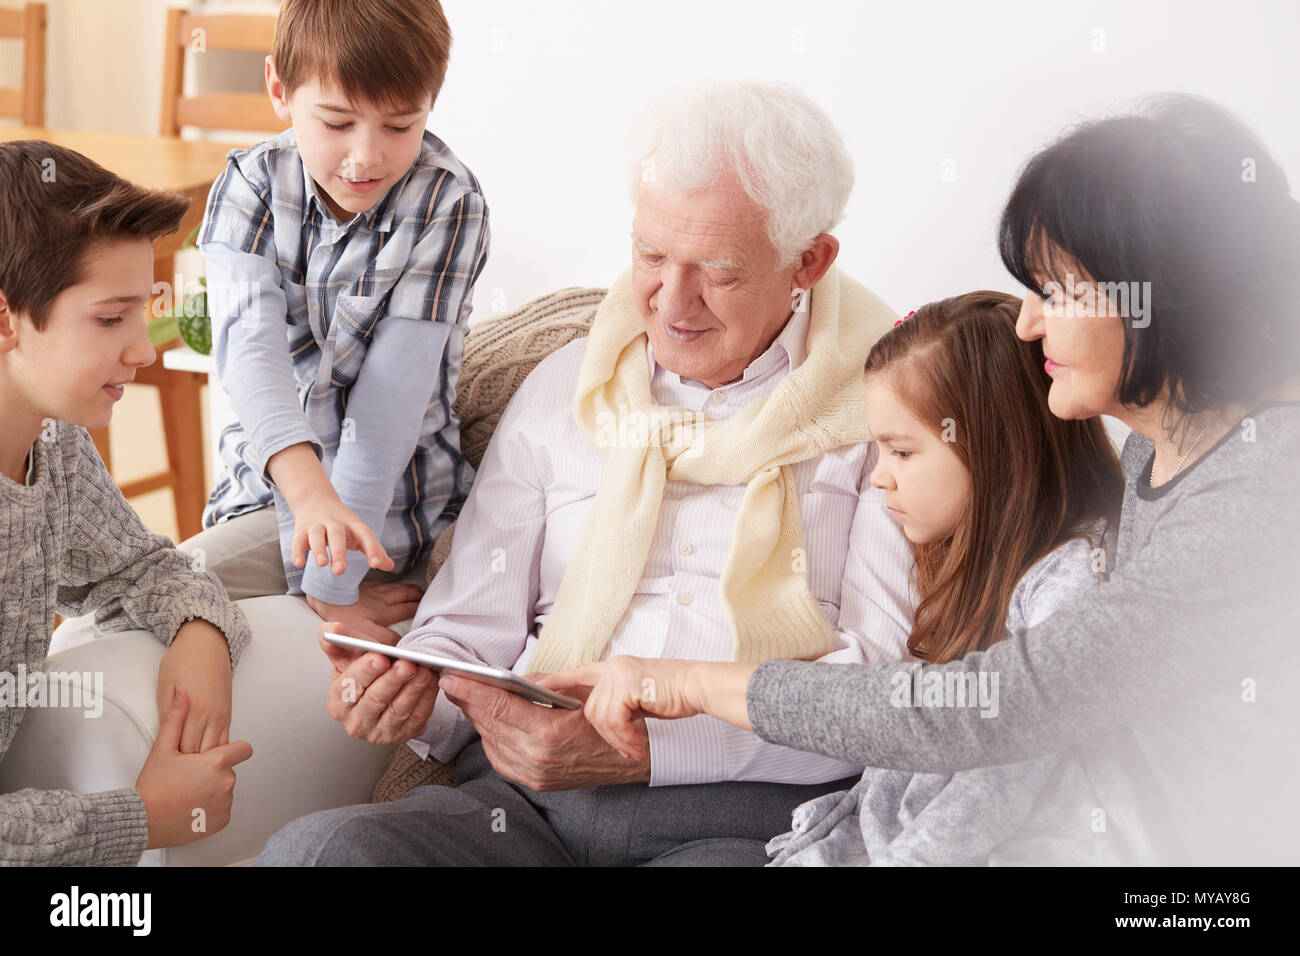 Grandchildren teaching grandpa how to use tablet - Stock Image